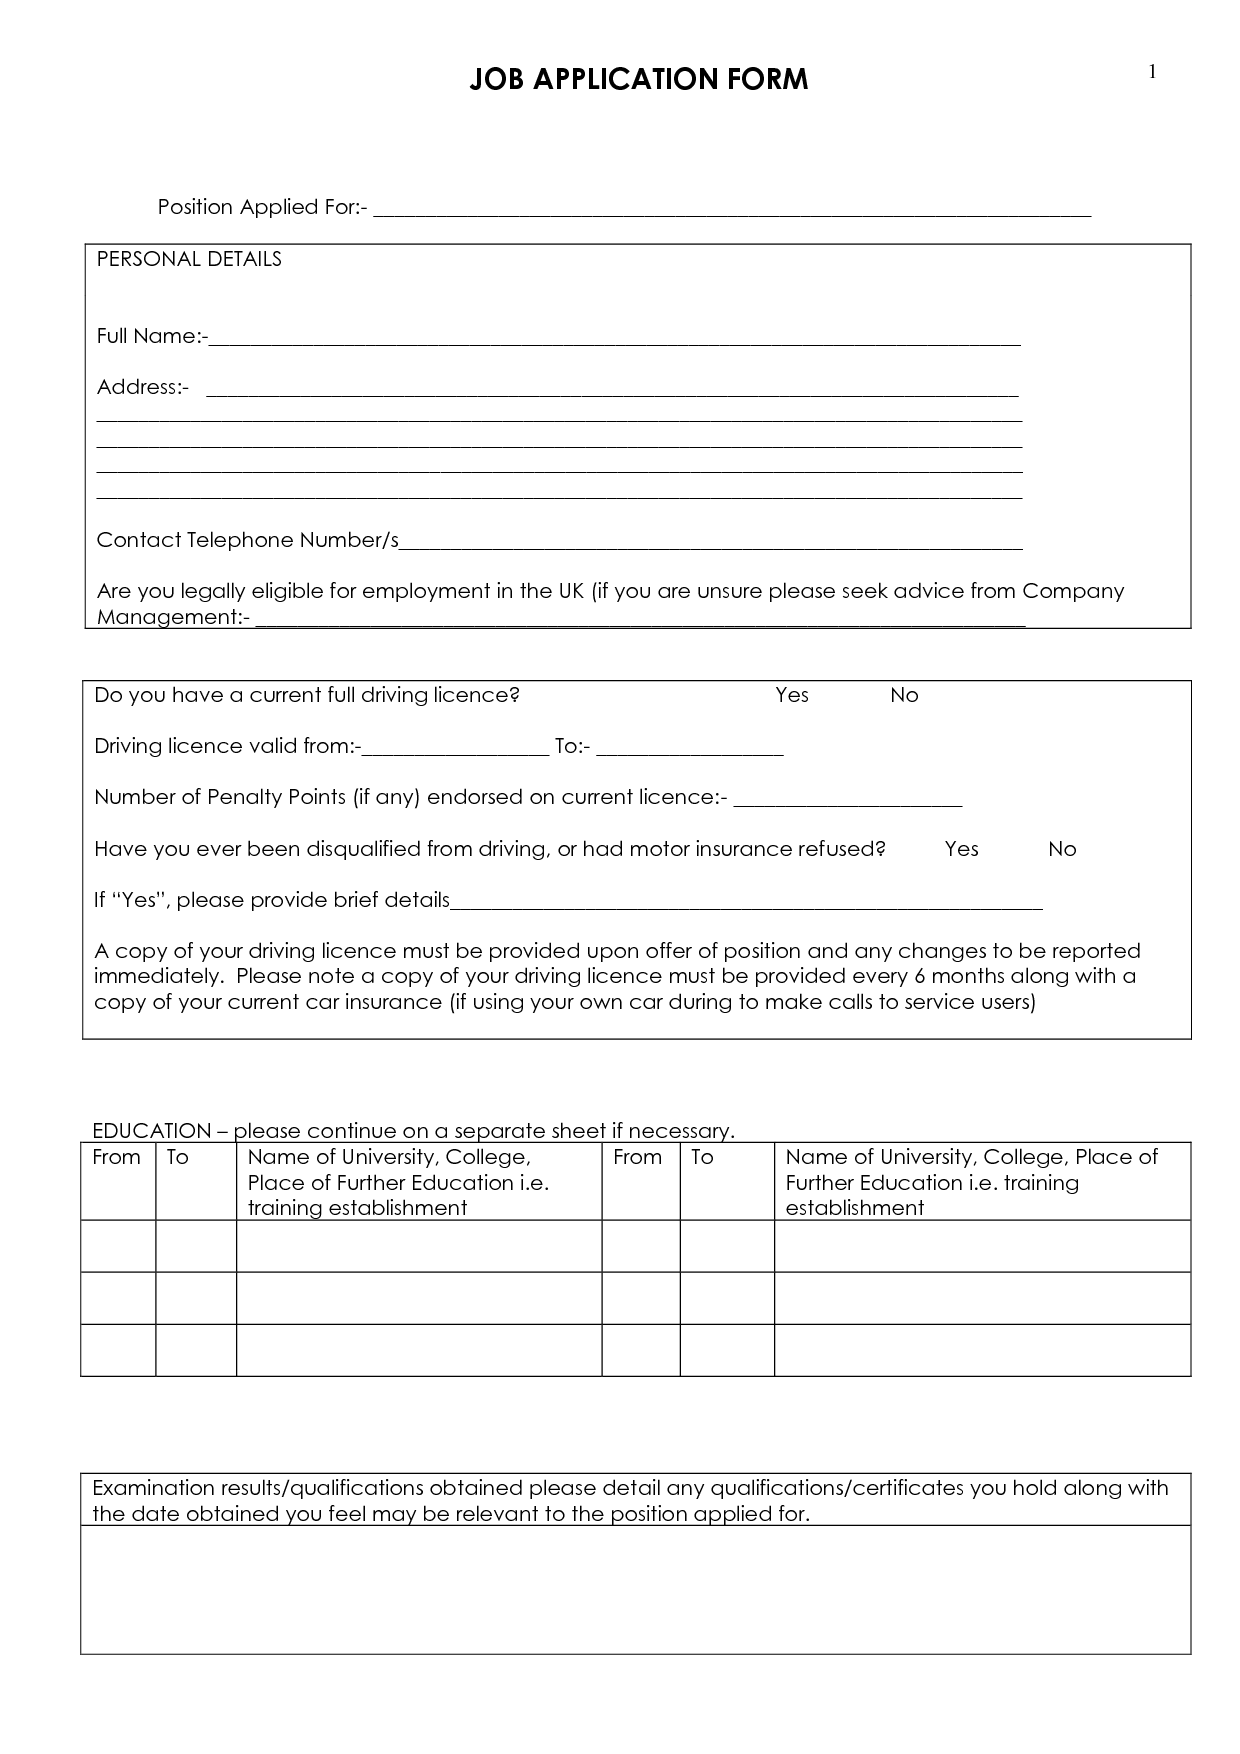 employee application form job application form to print blank job application forms